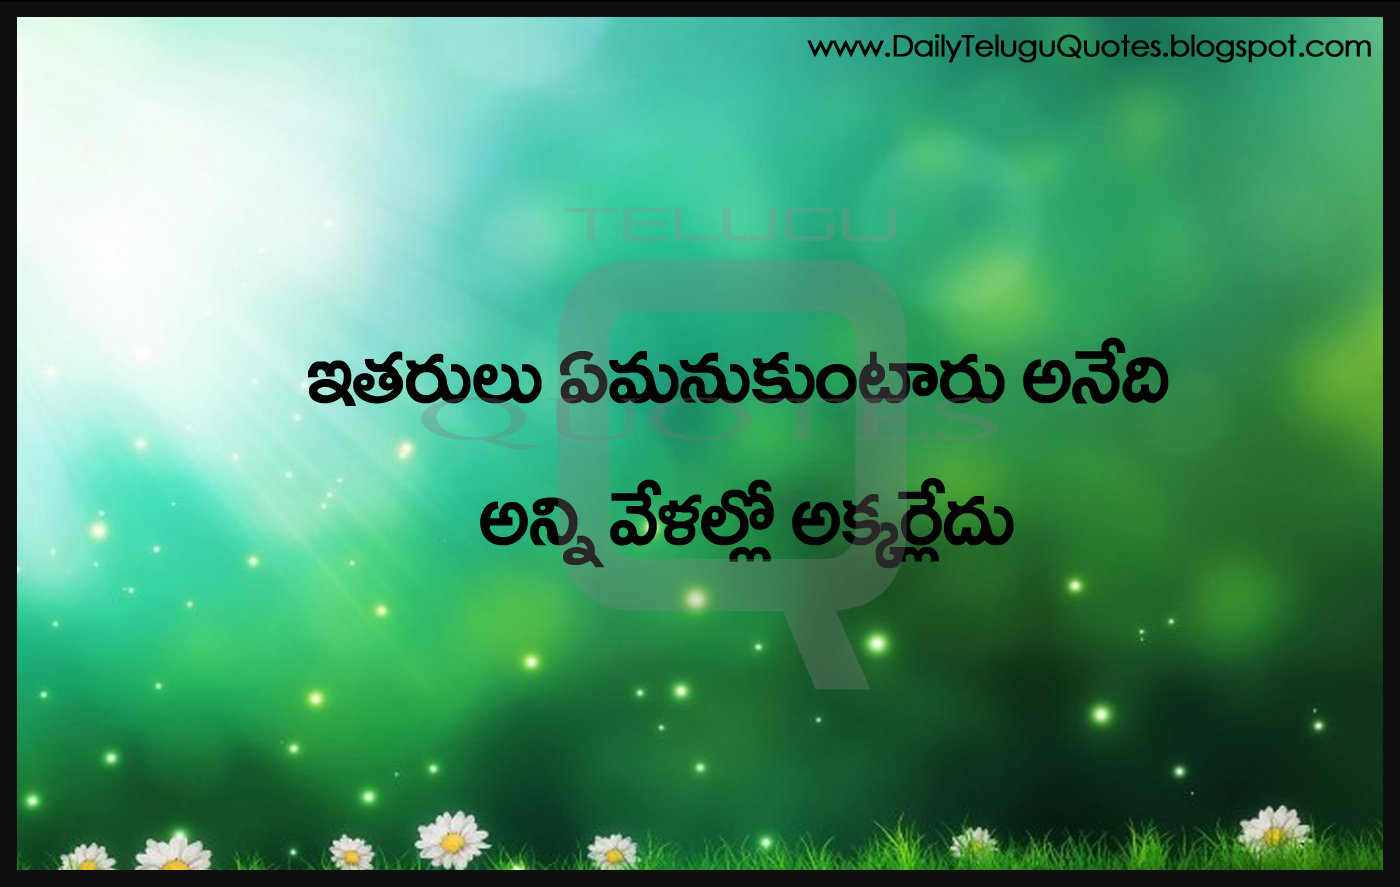 Telugu Best Quotes Inspiration Quotations In Telugu Hd Wallpapers